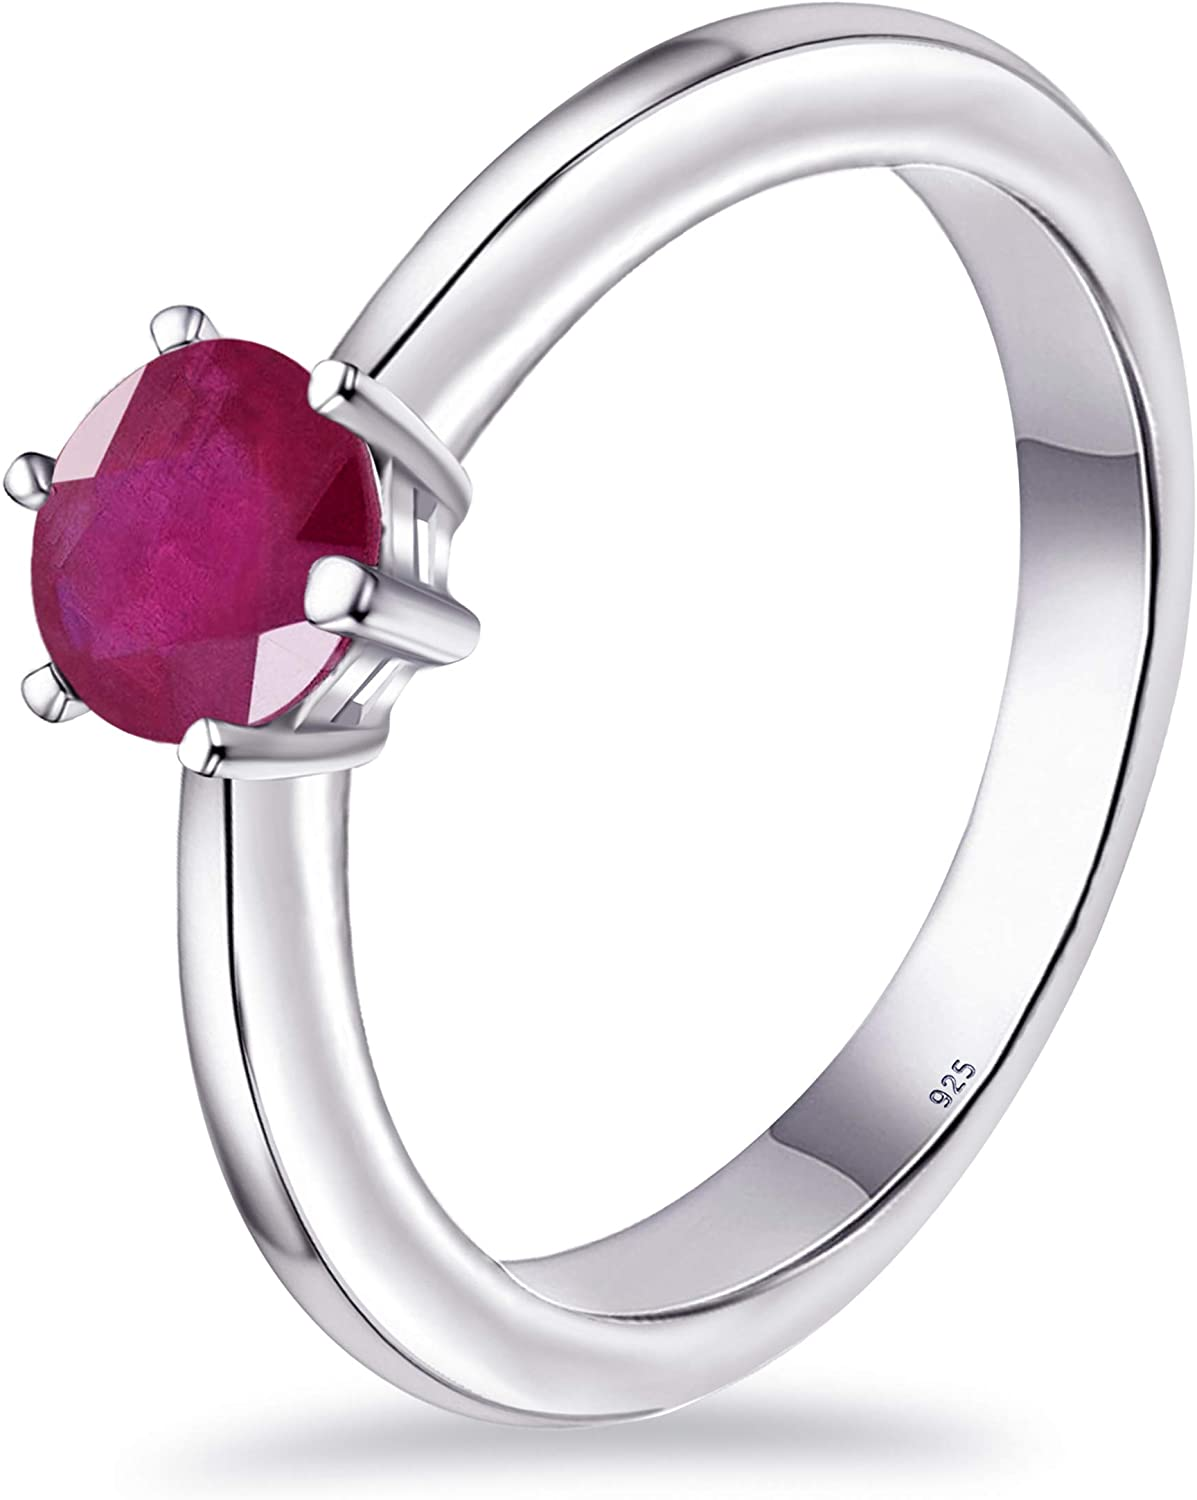 0.72 Ct Round Red Ruby, Sapphire Solitaire 925 Sterling Silver Ring For Women By Orchid Jewelry : A Perfect Birthstone For July